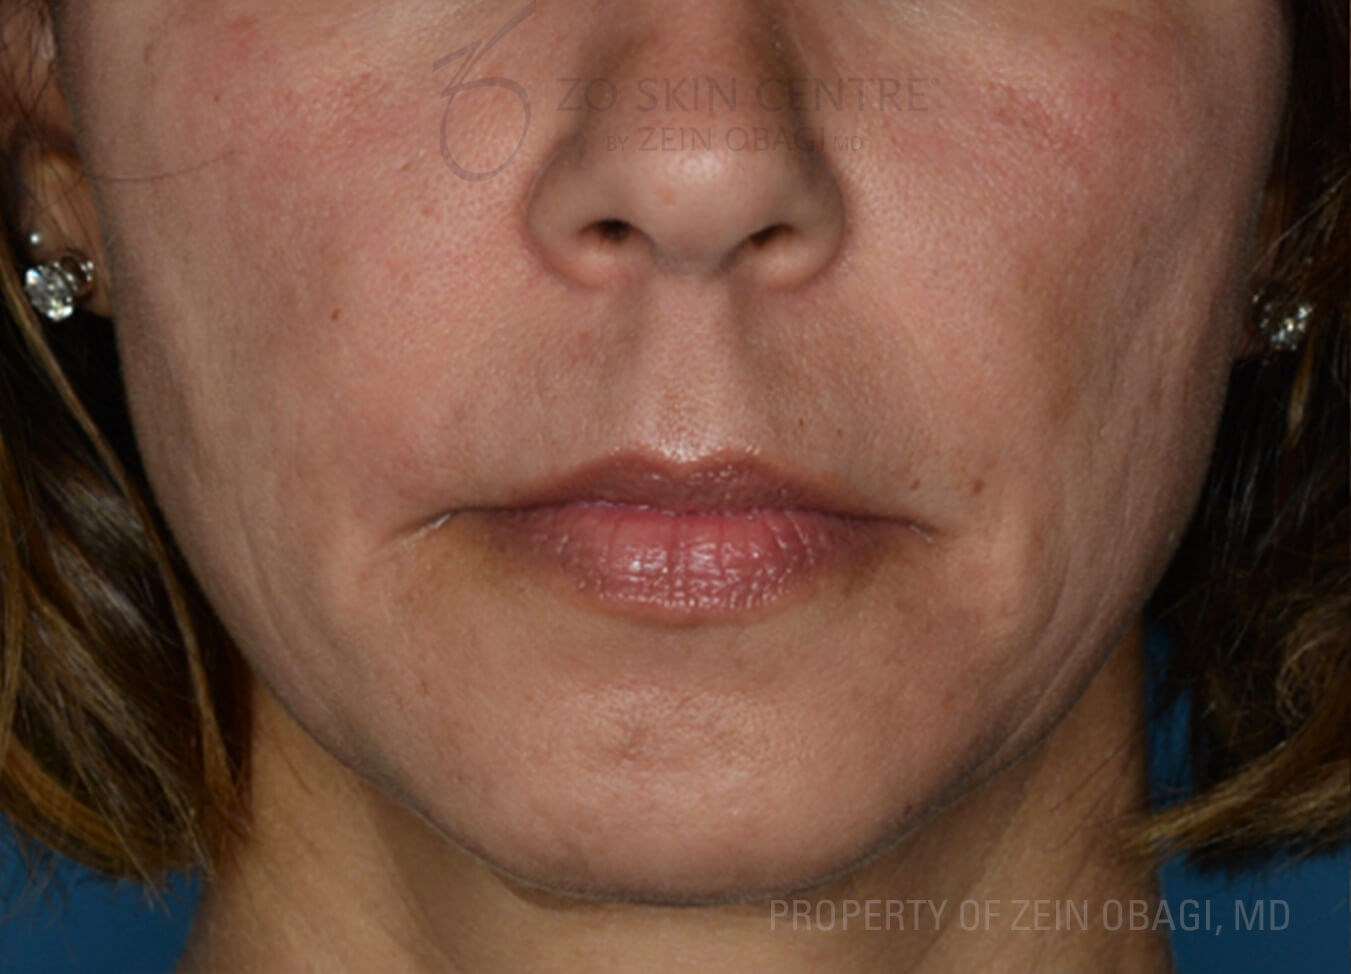 Front View - Cheek and Chin Before Customized Treatment